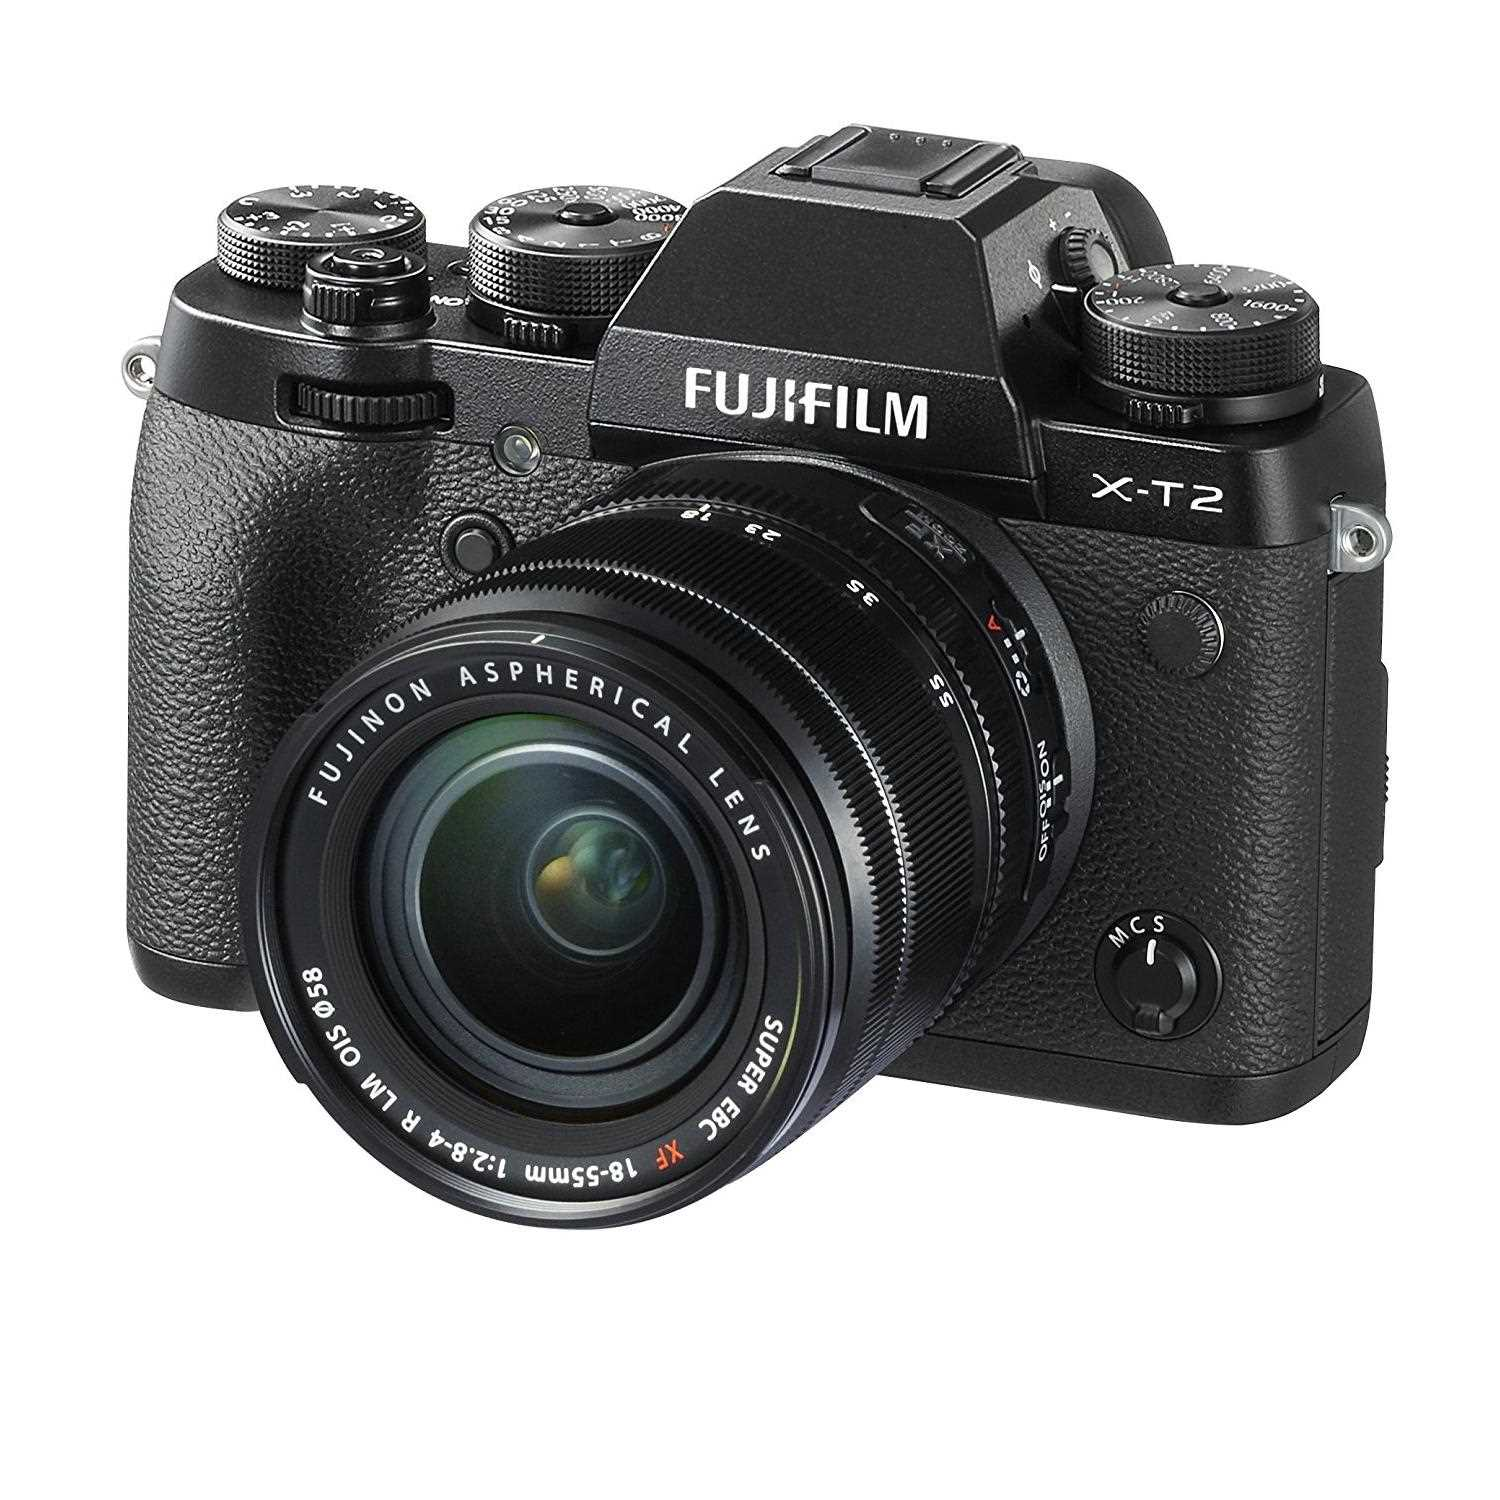 Fujifilm X-T2 Camera with 18-55 mm lens